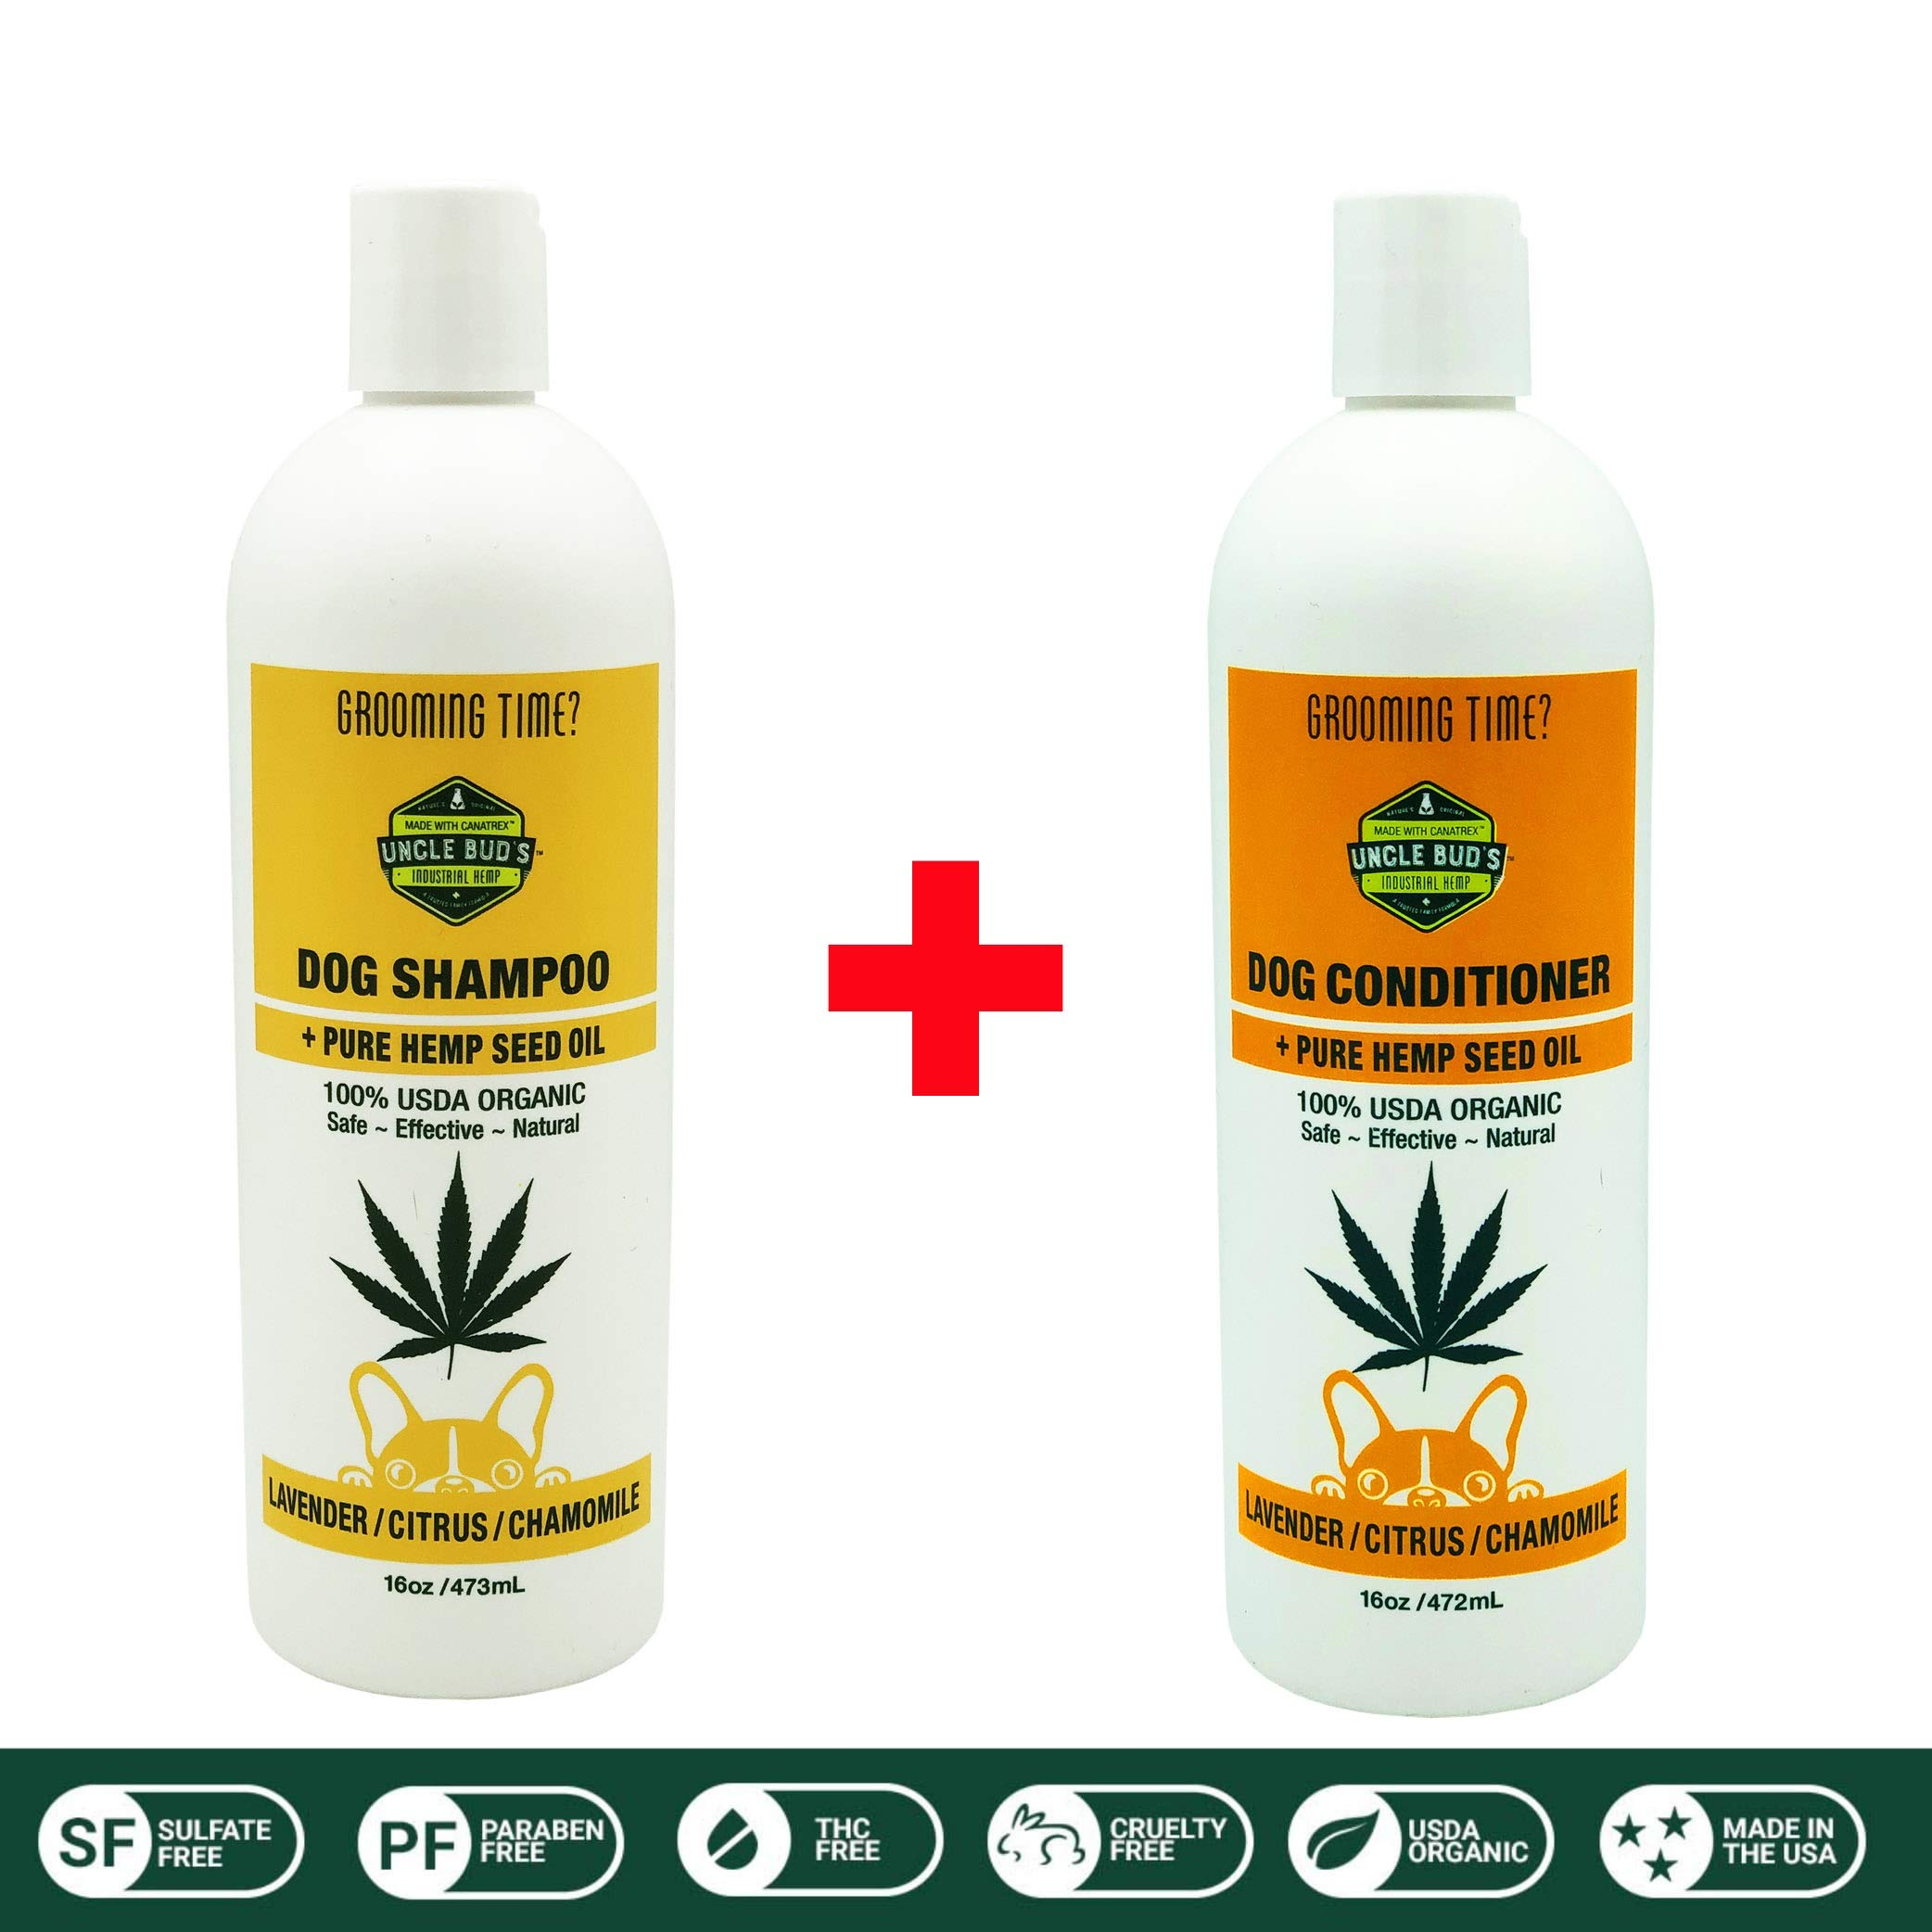 All Natural Hemp Dog Shampoo & Conditioner Value Pack SOOTHES and MOISTURIZES Dry Skin PARABEN Free, SULFATE Free, GMO Free ... by NATURE'S ORIGINAL MADE WITH CANATREX UNCLE BUD'S · TOPICAL PAIN RELIEVER · A TRUSTED FAMILY FORMULA